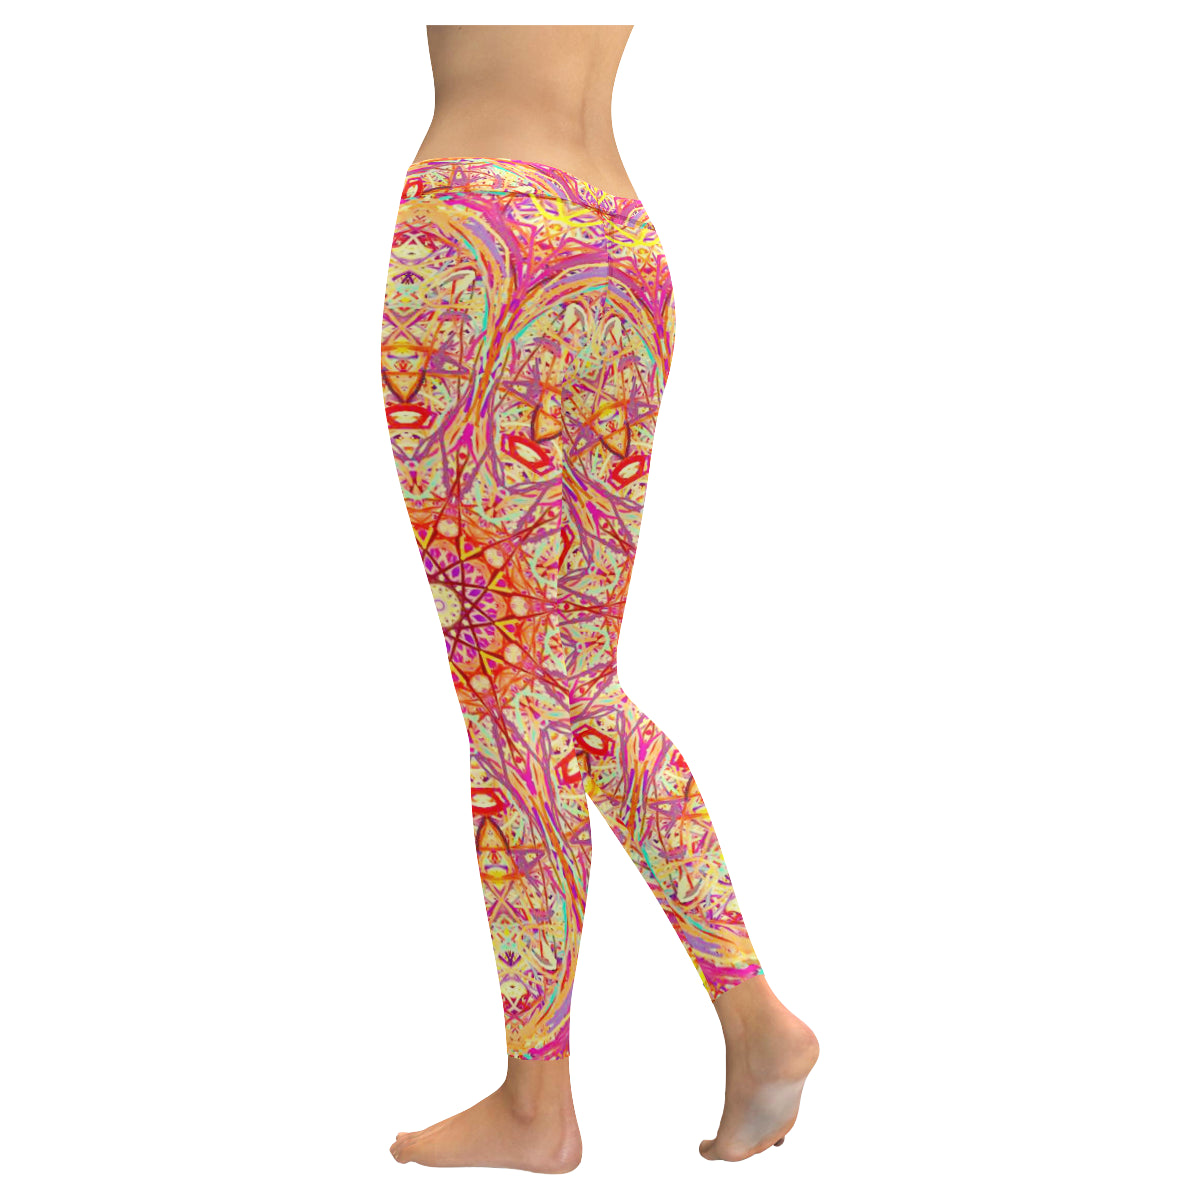 Thleudron Criolla New Low Rise Leggings (Flatlock Stitch